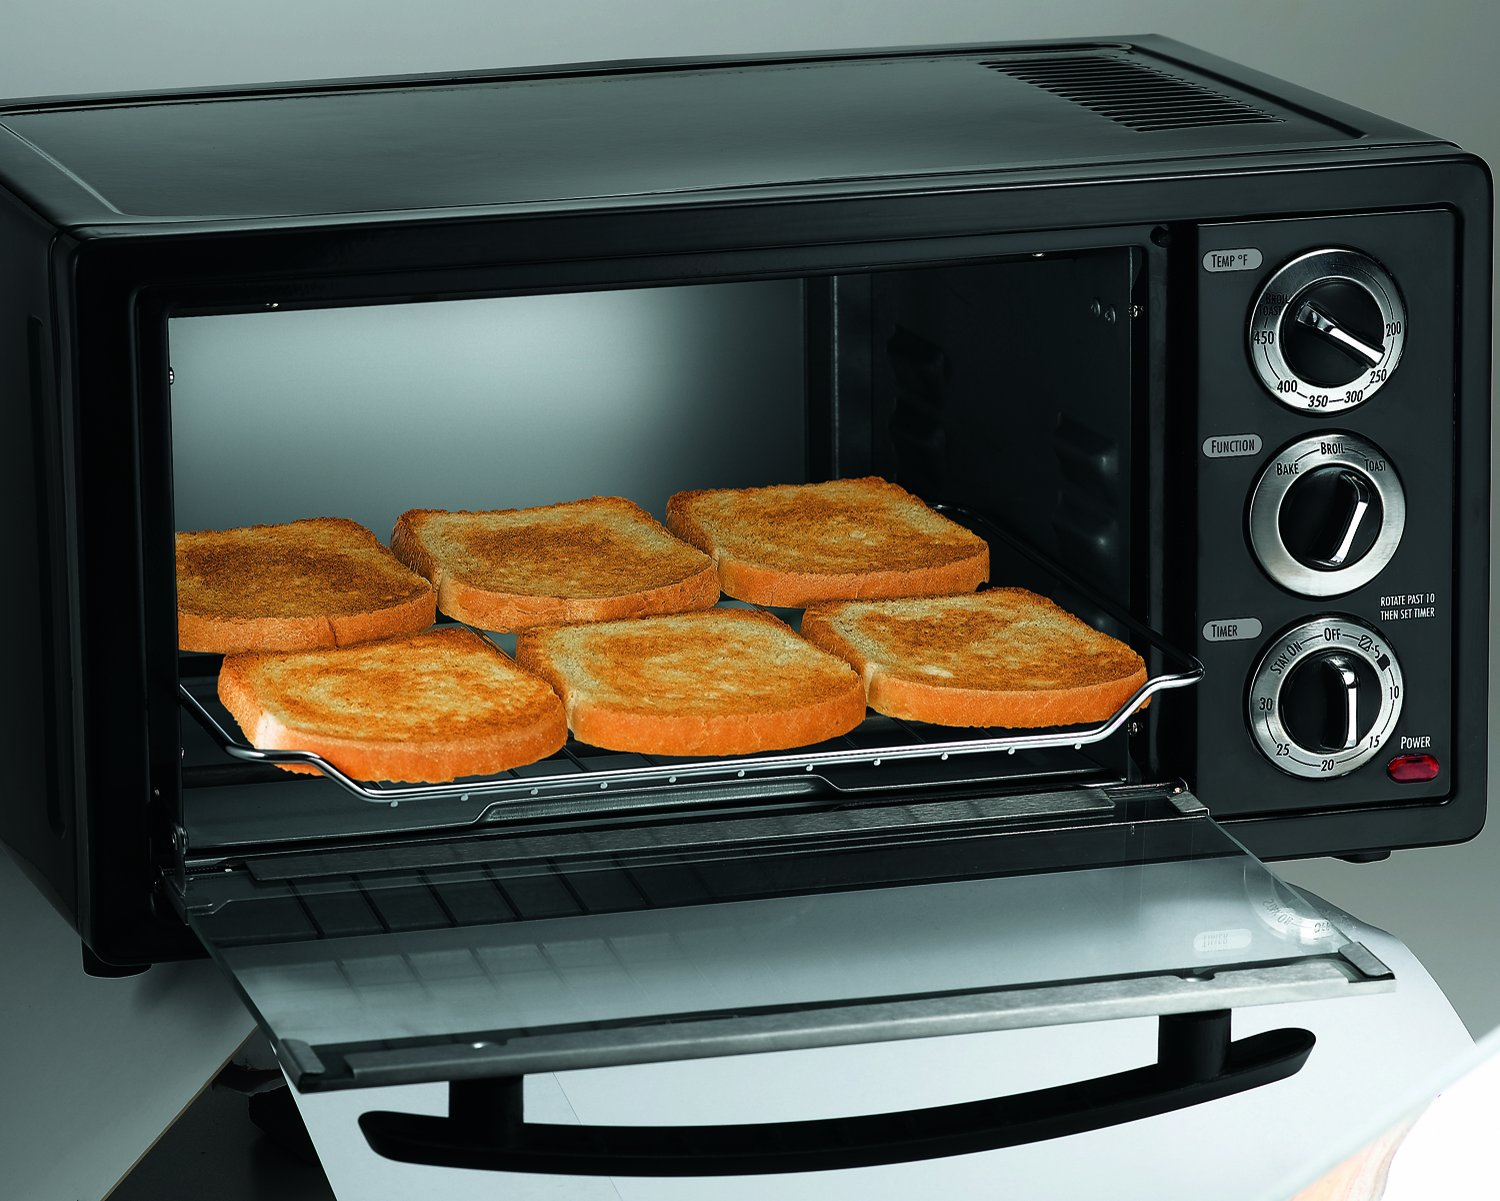 ovens the wirecutter on sale nystedt toaster brendan oven best